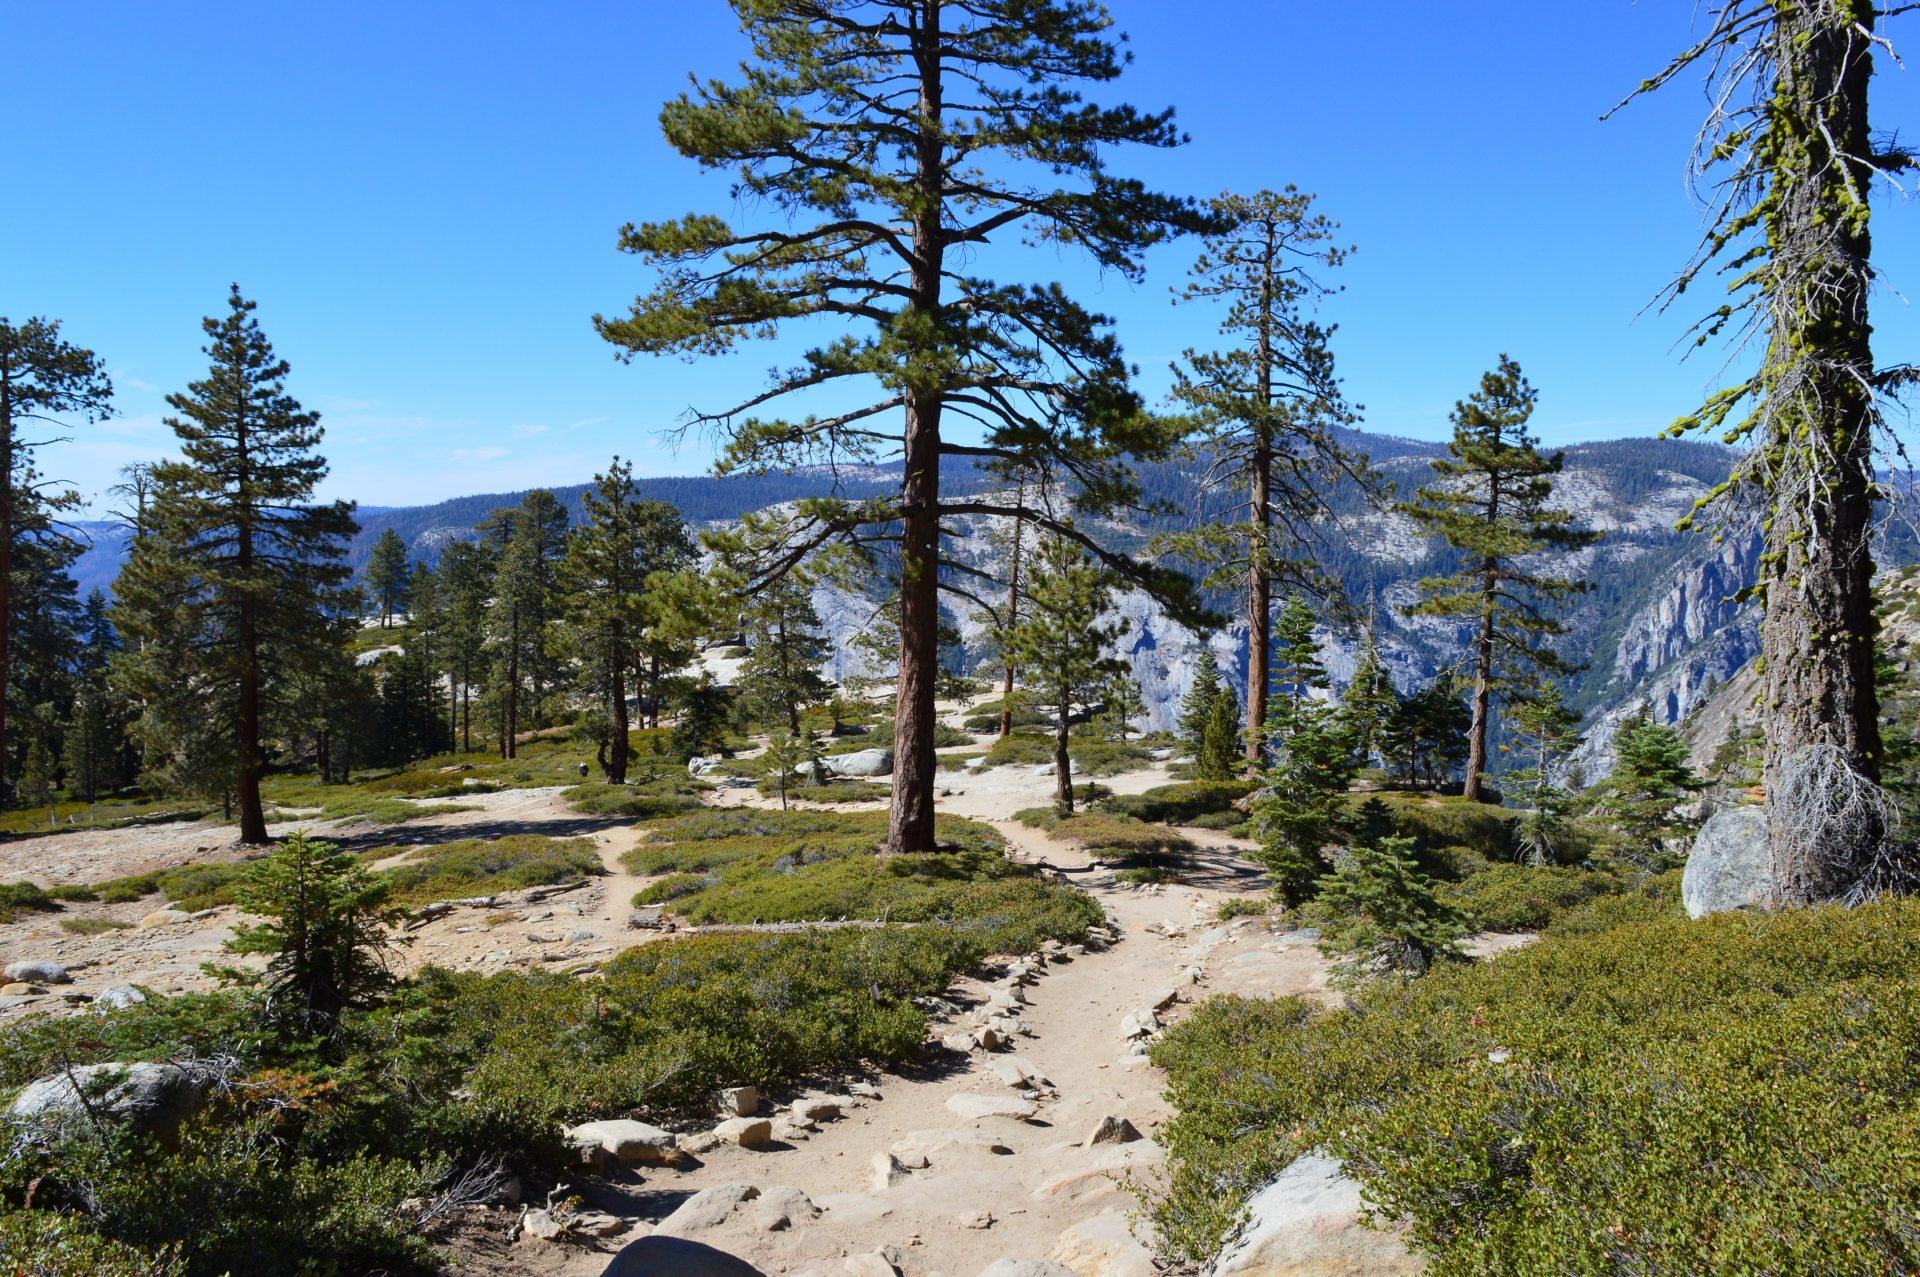 The Taft Point Trail